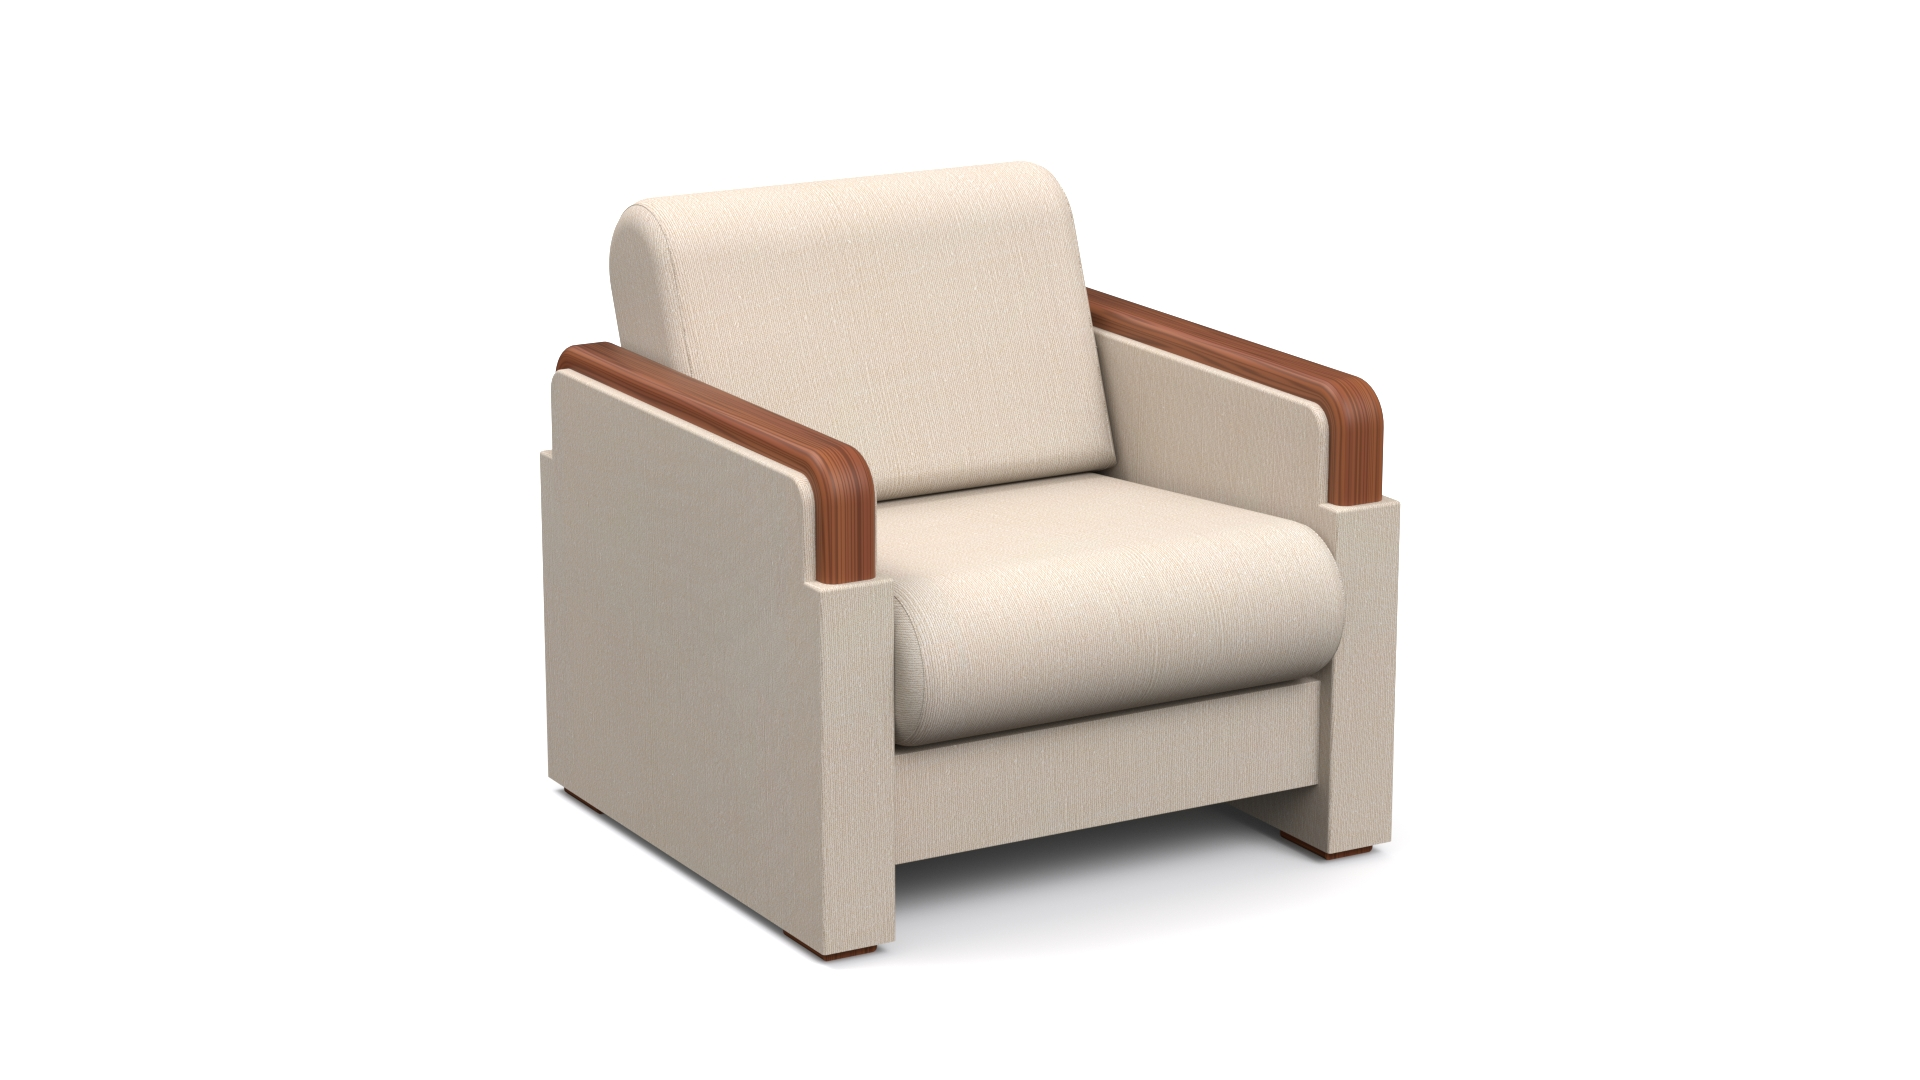 Ambassador Lounge Chair With Bentply Arm Caps L422041 | Blockhouse within Arm Caps for Chairs (Image 1 of 30)